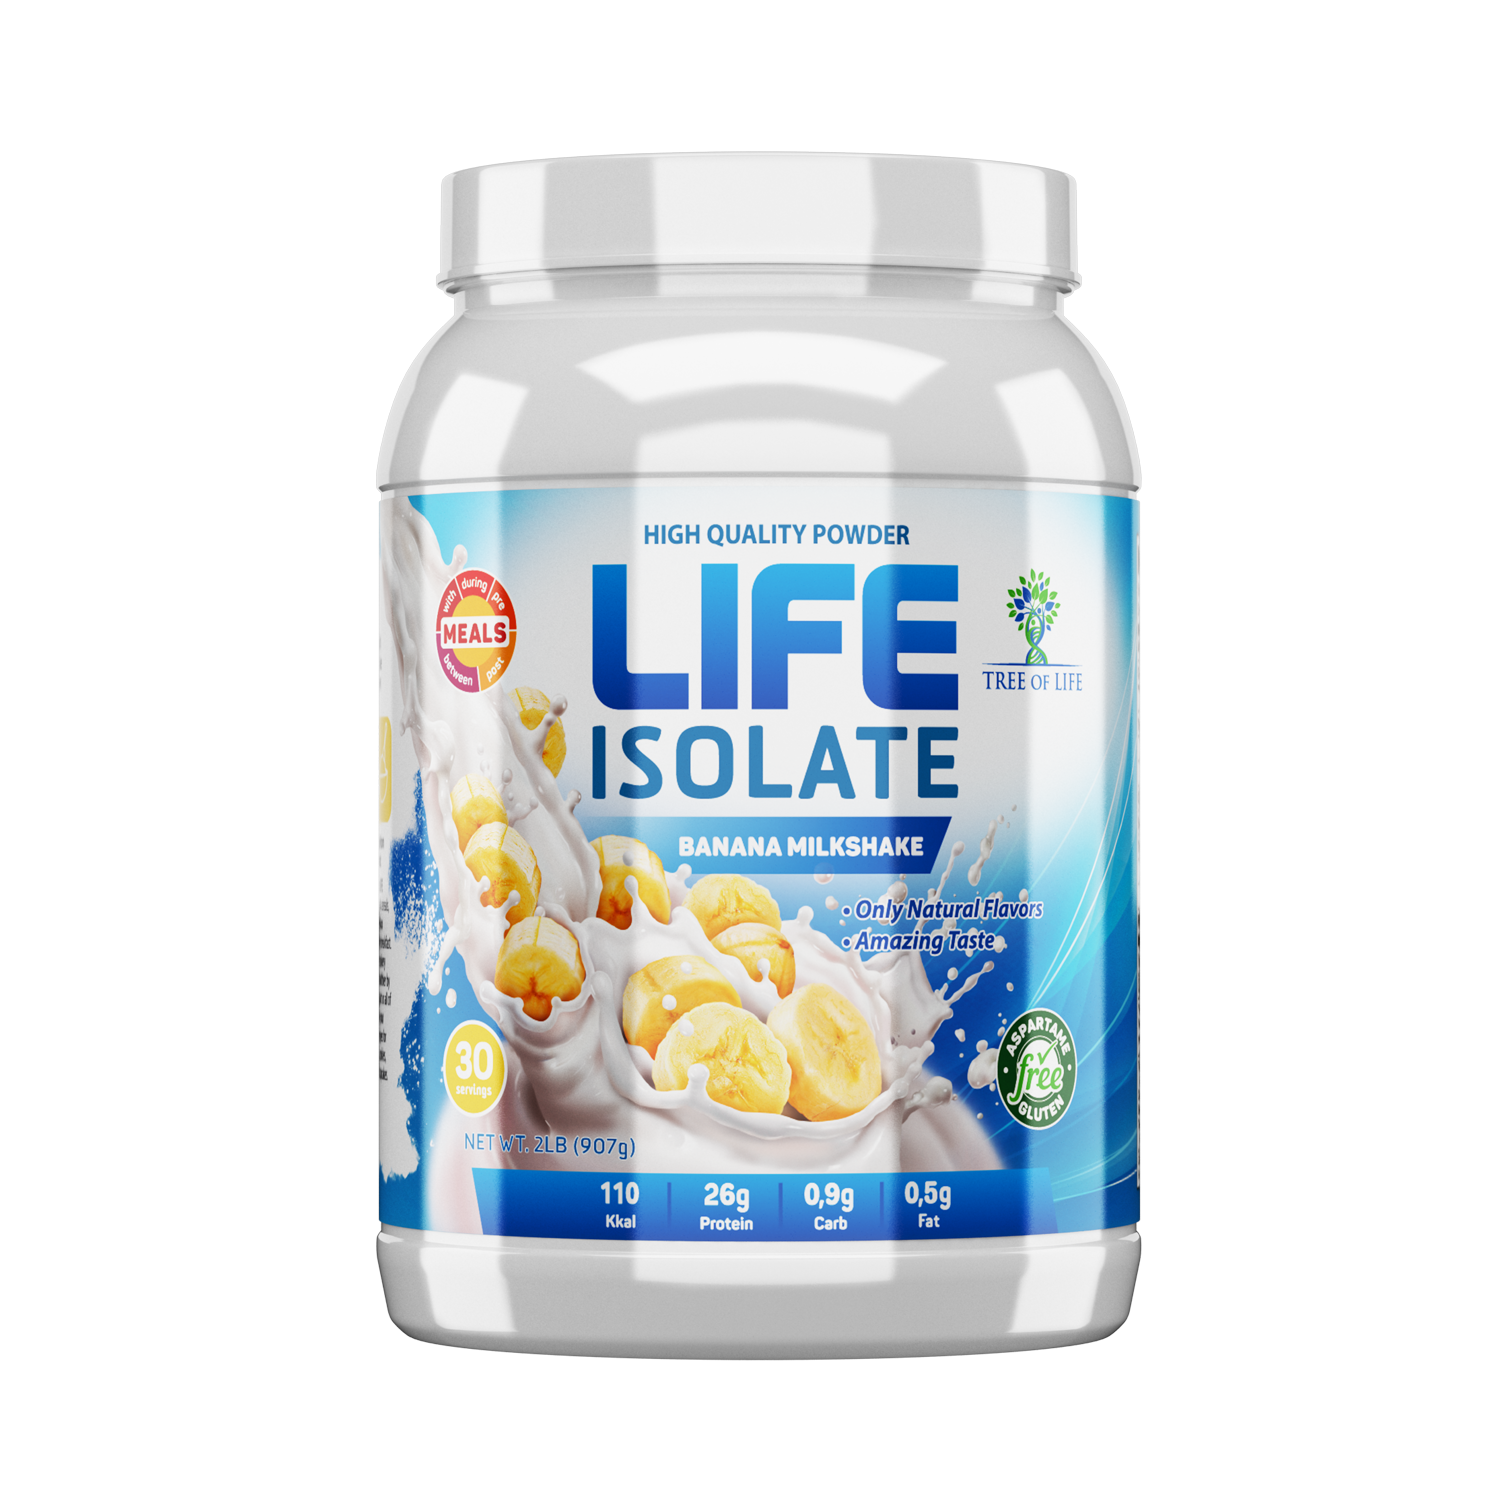 Life Isolate 2lb Banana Milkshake